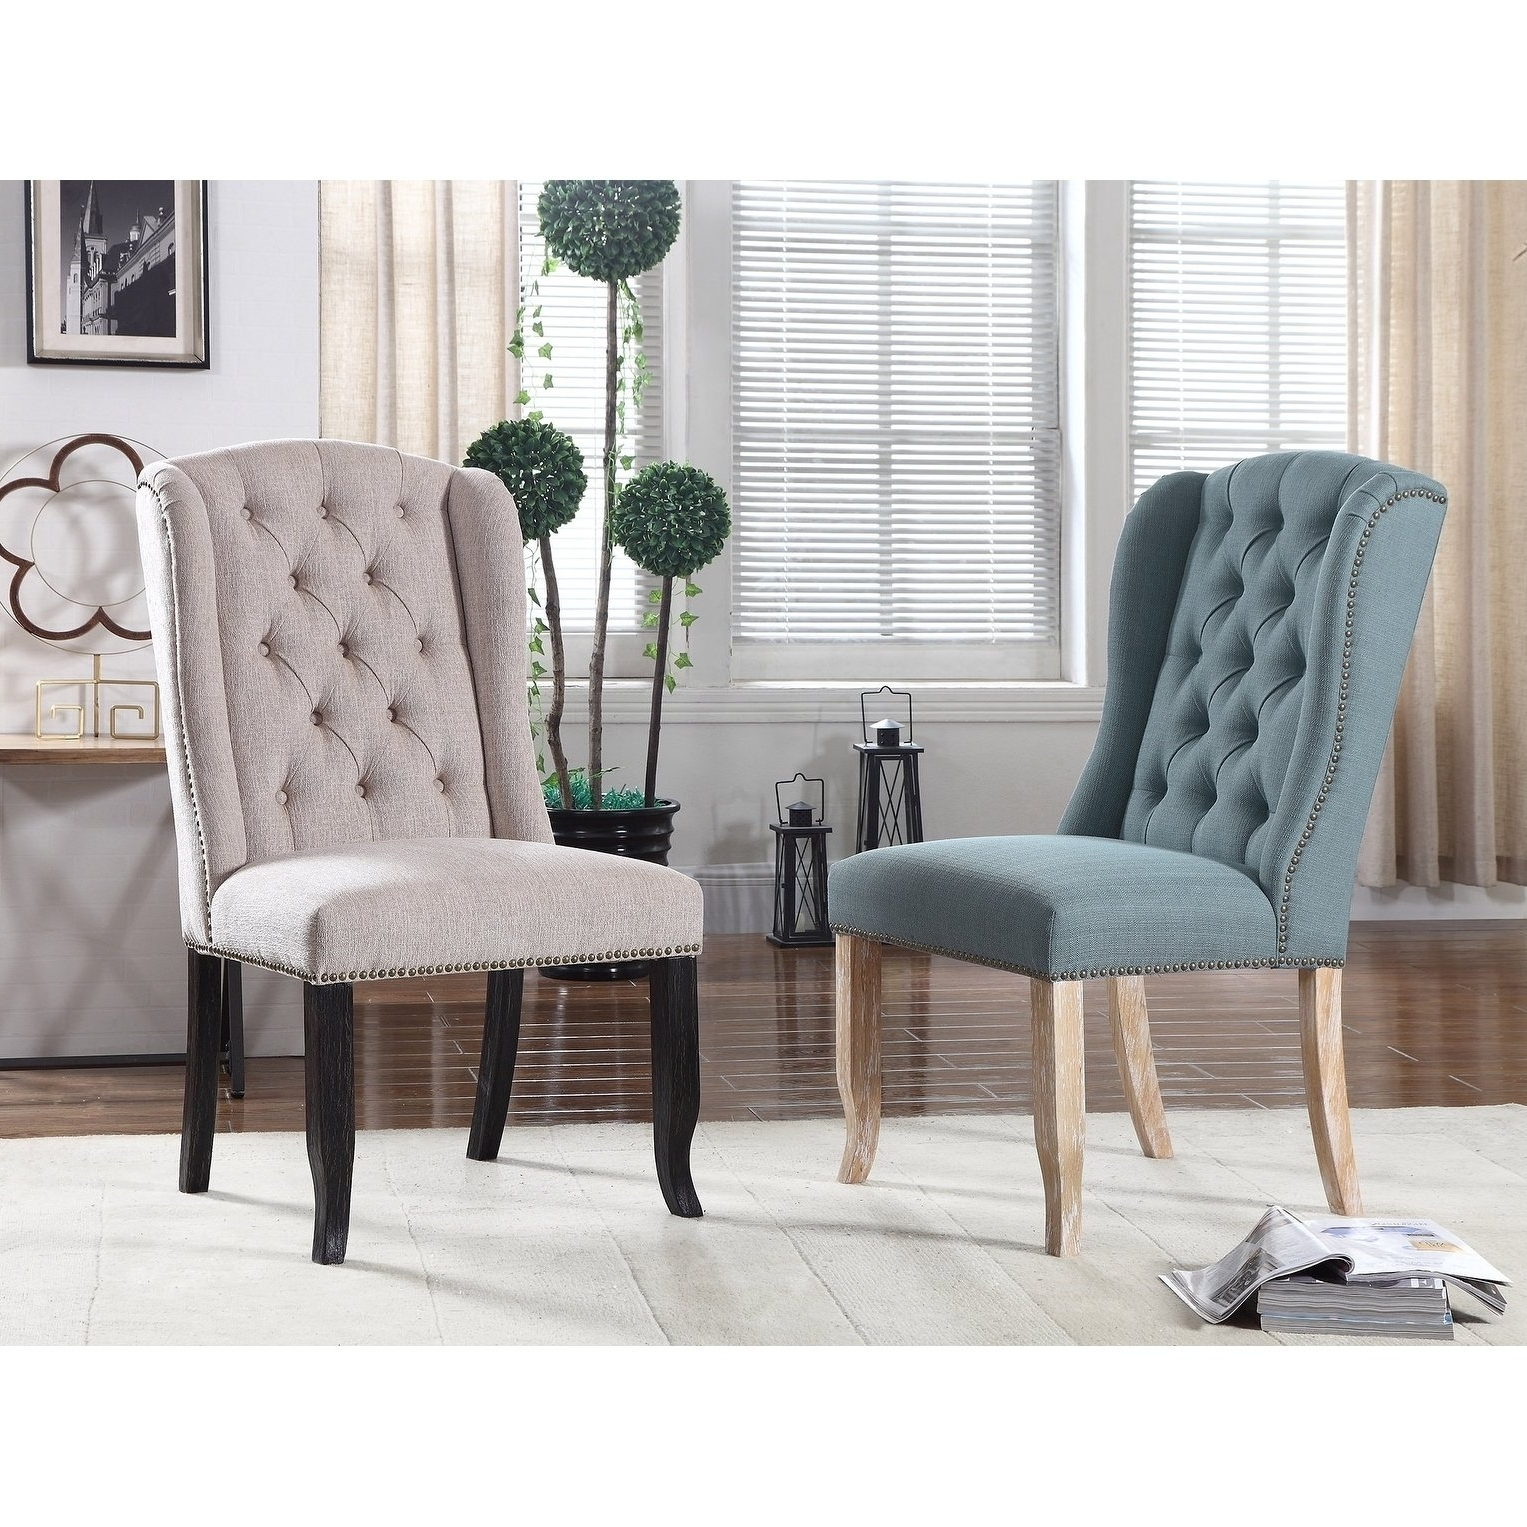 Caira Black Upholstered Side Chairs Pertaining To Most Recent Shop Best Master Furniture Upholstered Wingback Side Chairs (Set Of (Gallery 20 of 20)